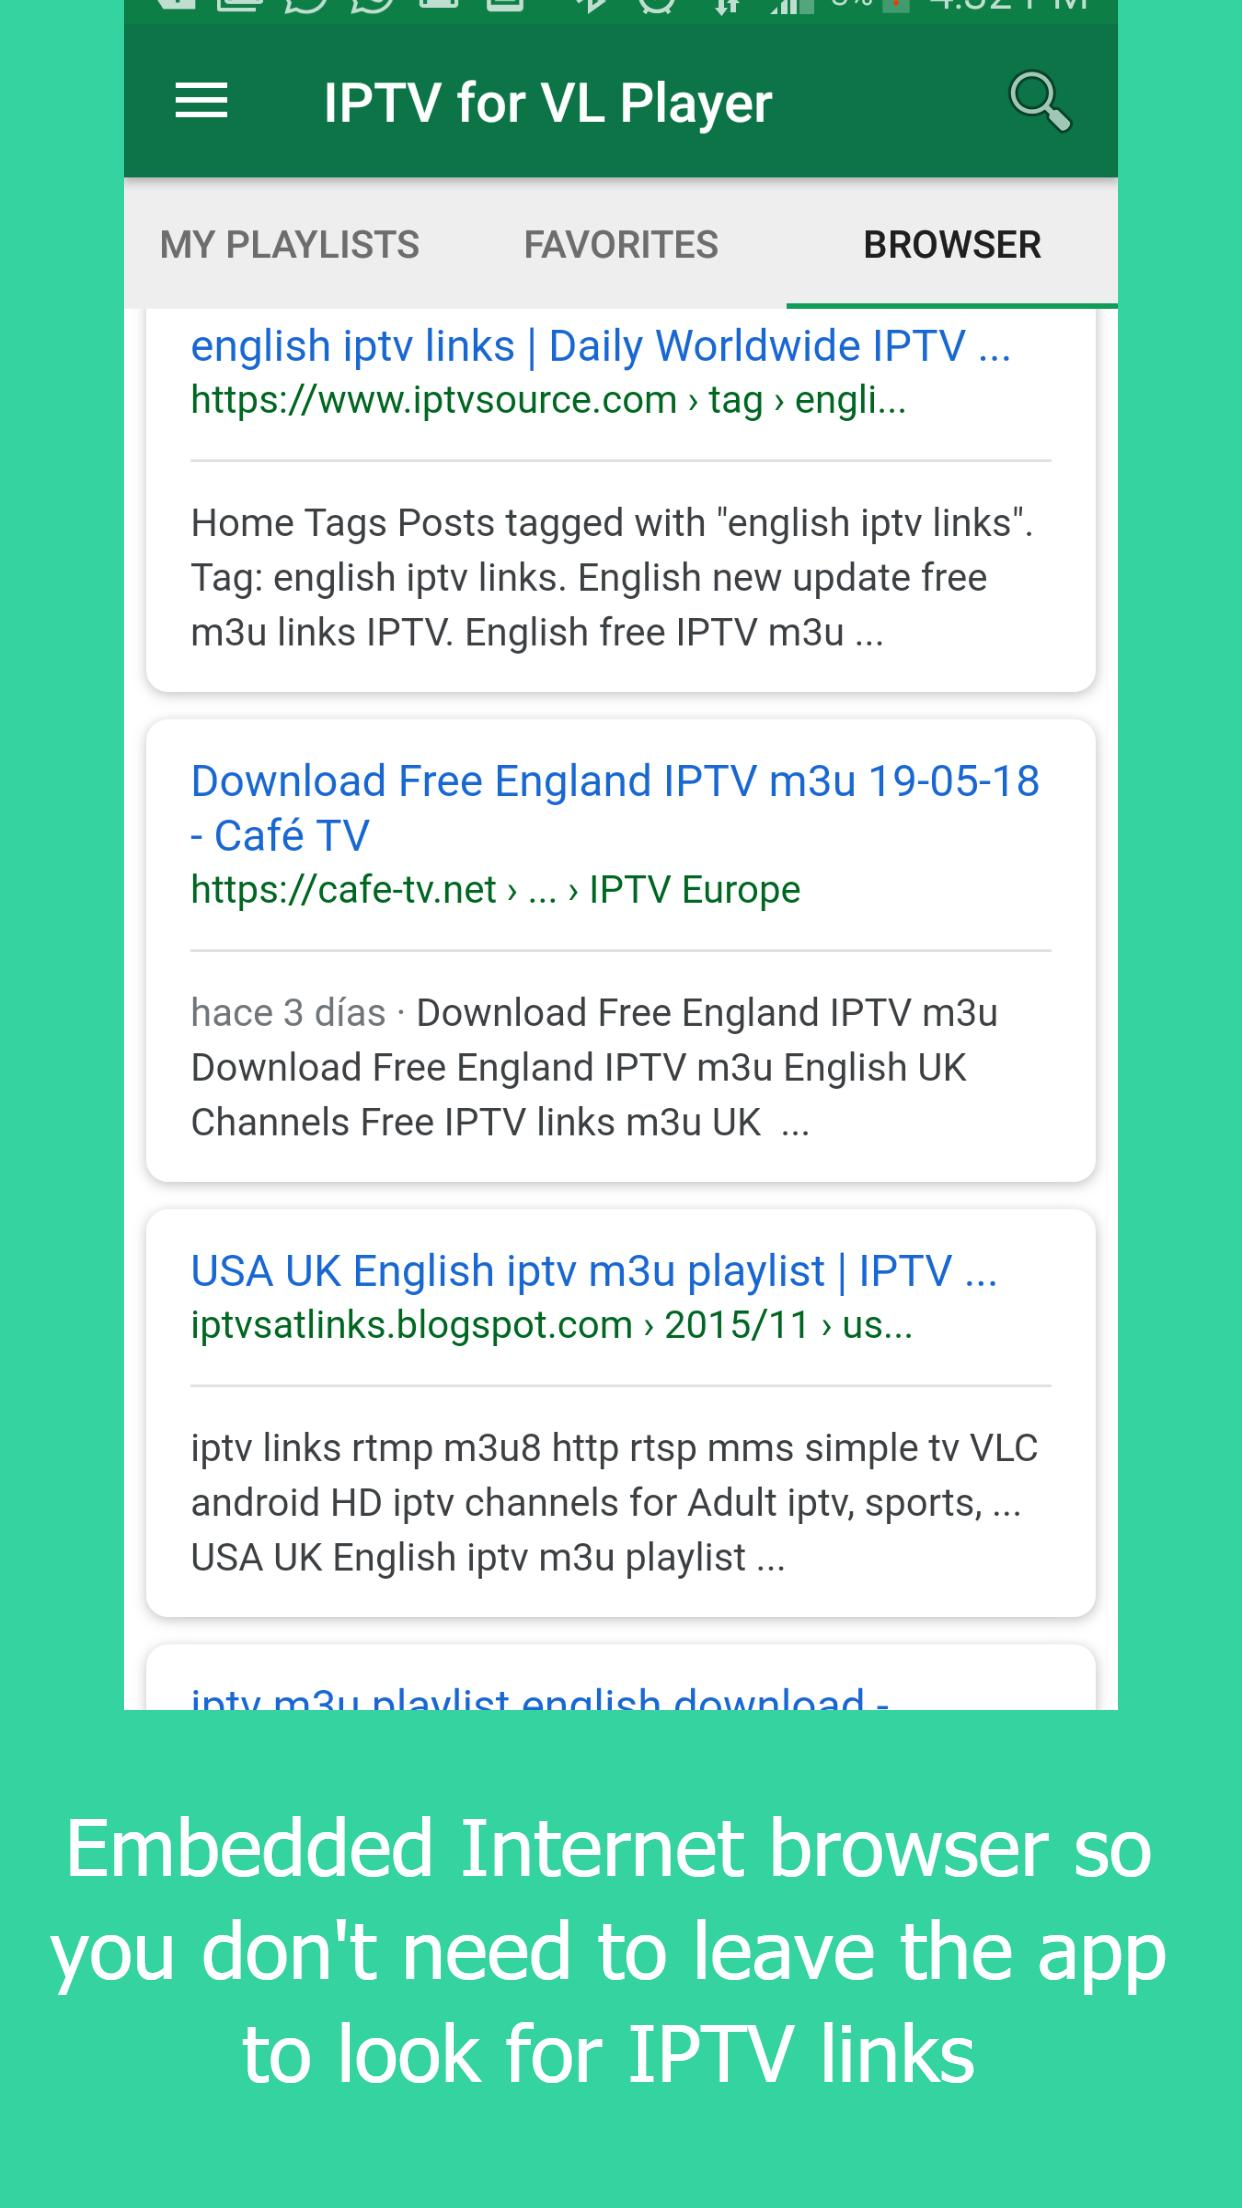 IPTV Manager for VL Player for Android - APK Download